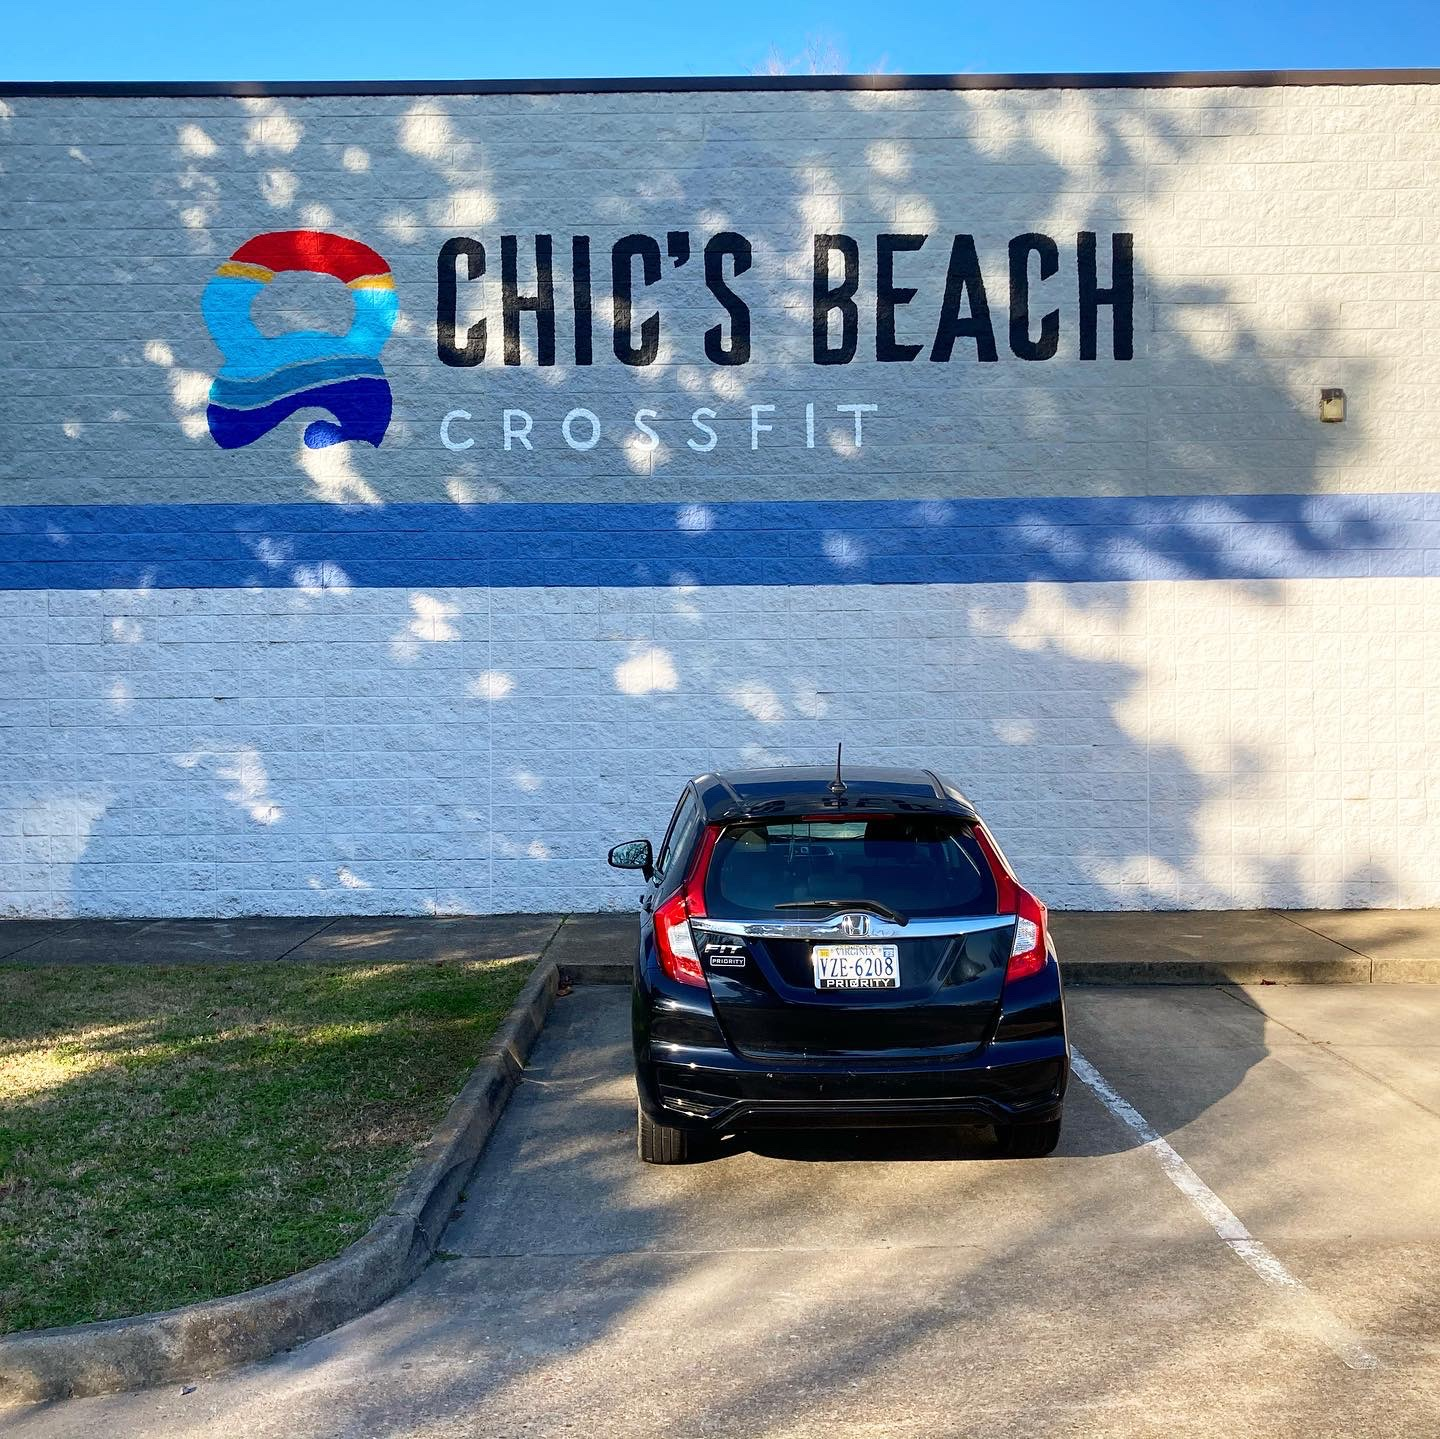 Chic's Beach Crossfit